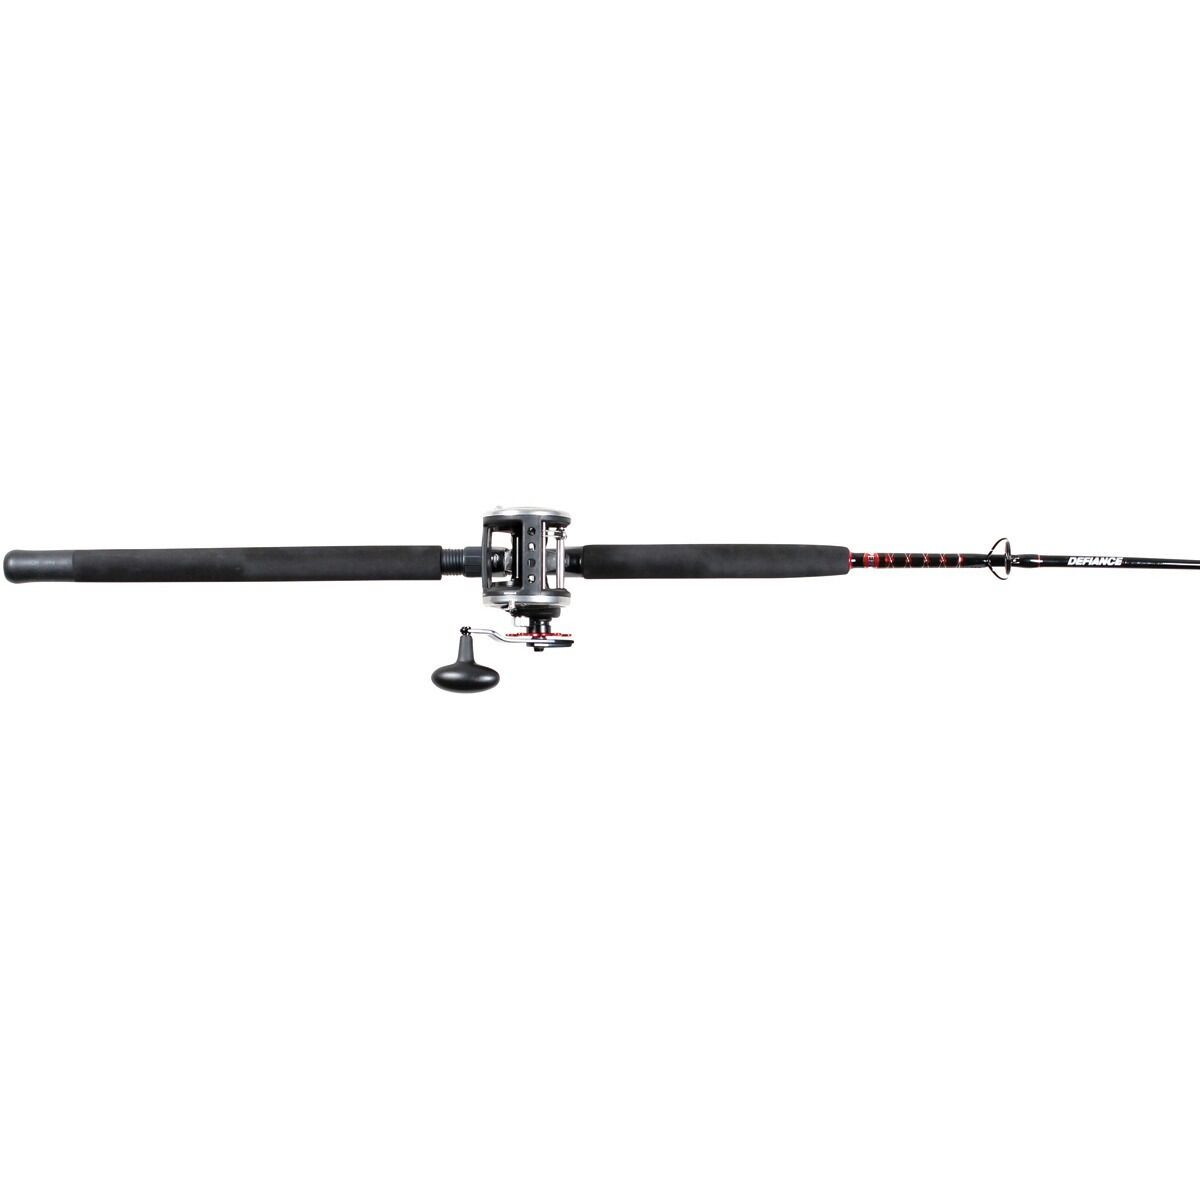 Penn Defiance Overhead 5'6'' 1 Piece  10-15KG Rod Only + Brand New + Warranty  all products get up to 34% off